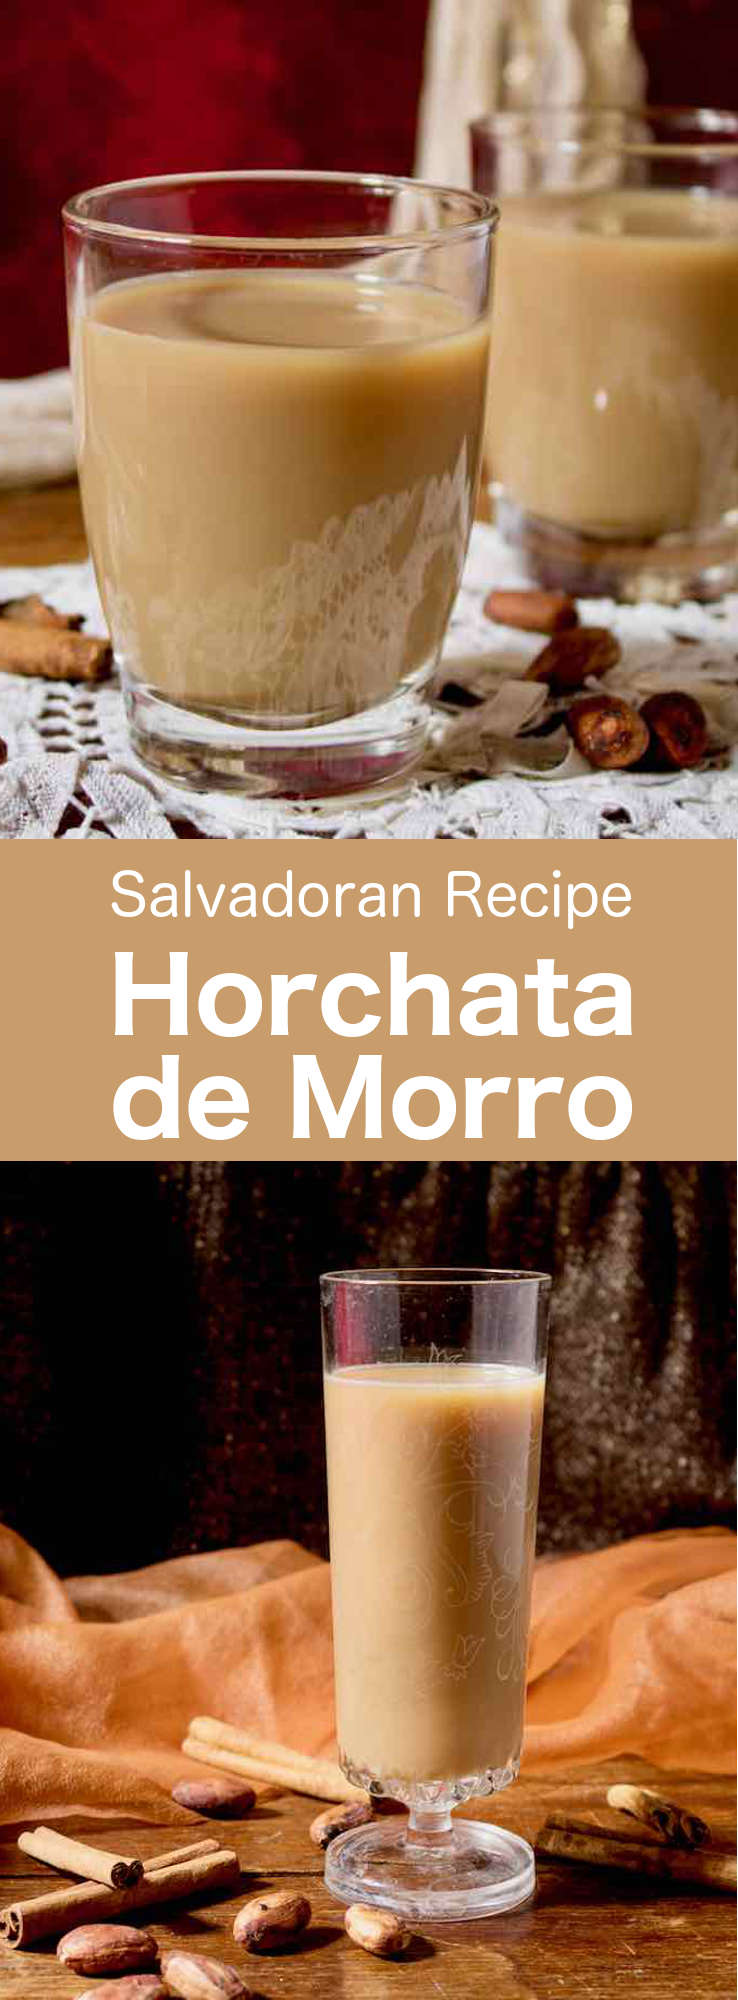 Horchata de morro is a popular Salvadoran drink made from a blend of spices and seeds such as morro, cocoa, sesame, peanut and others. #CentralAmericanCuisine #CentralAmericanRecipe #SalvadoranCuisine #SalvadoranRecipe #WorldCuisine #196flavors